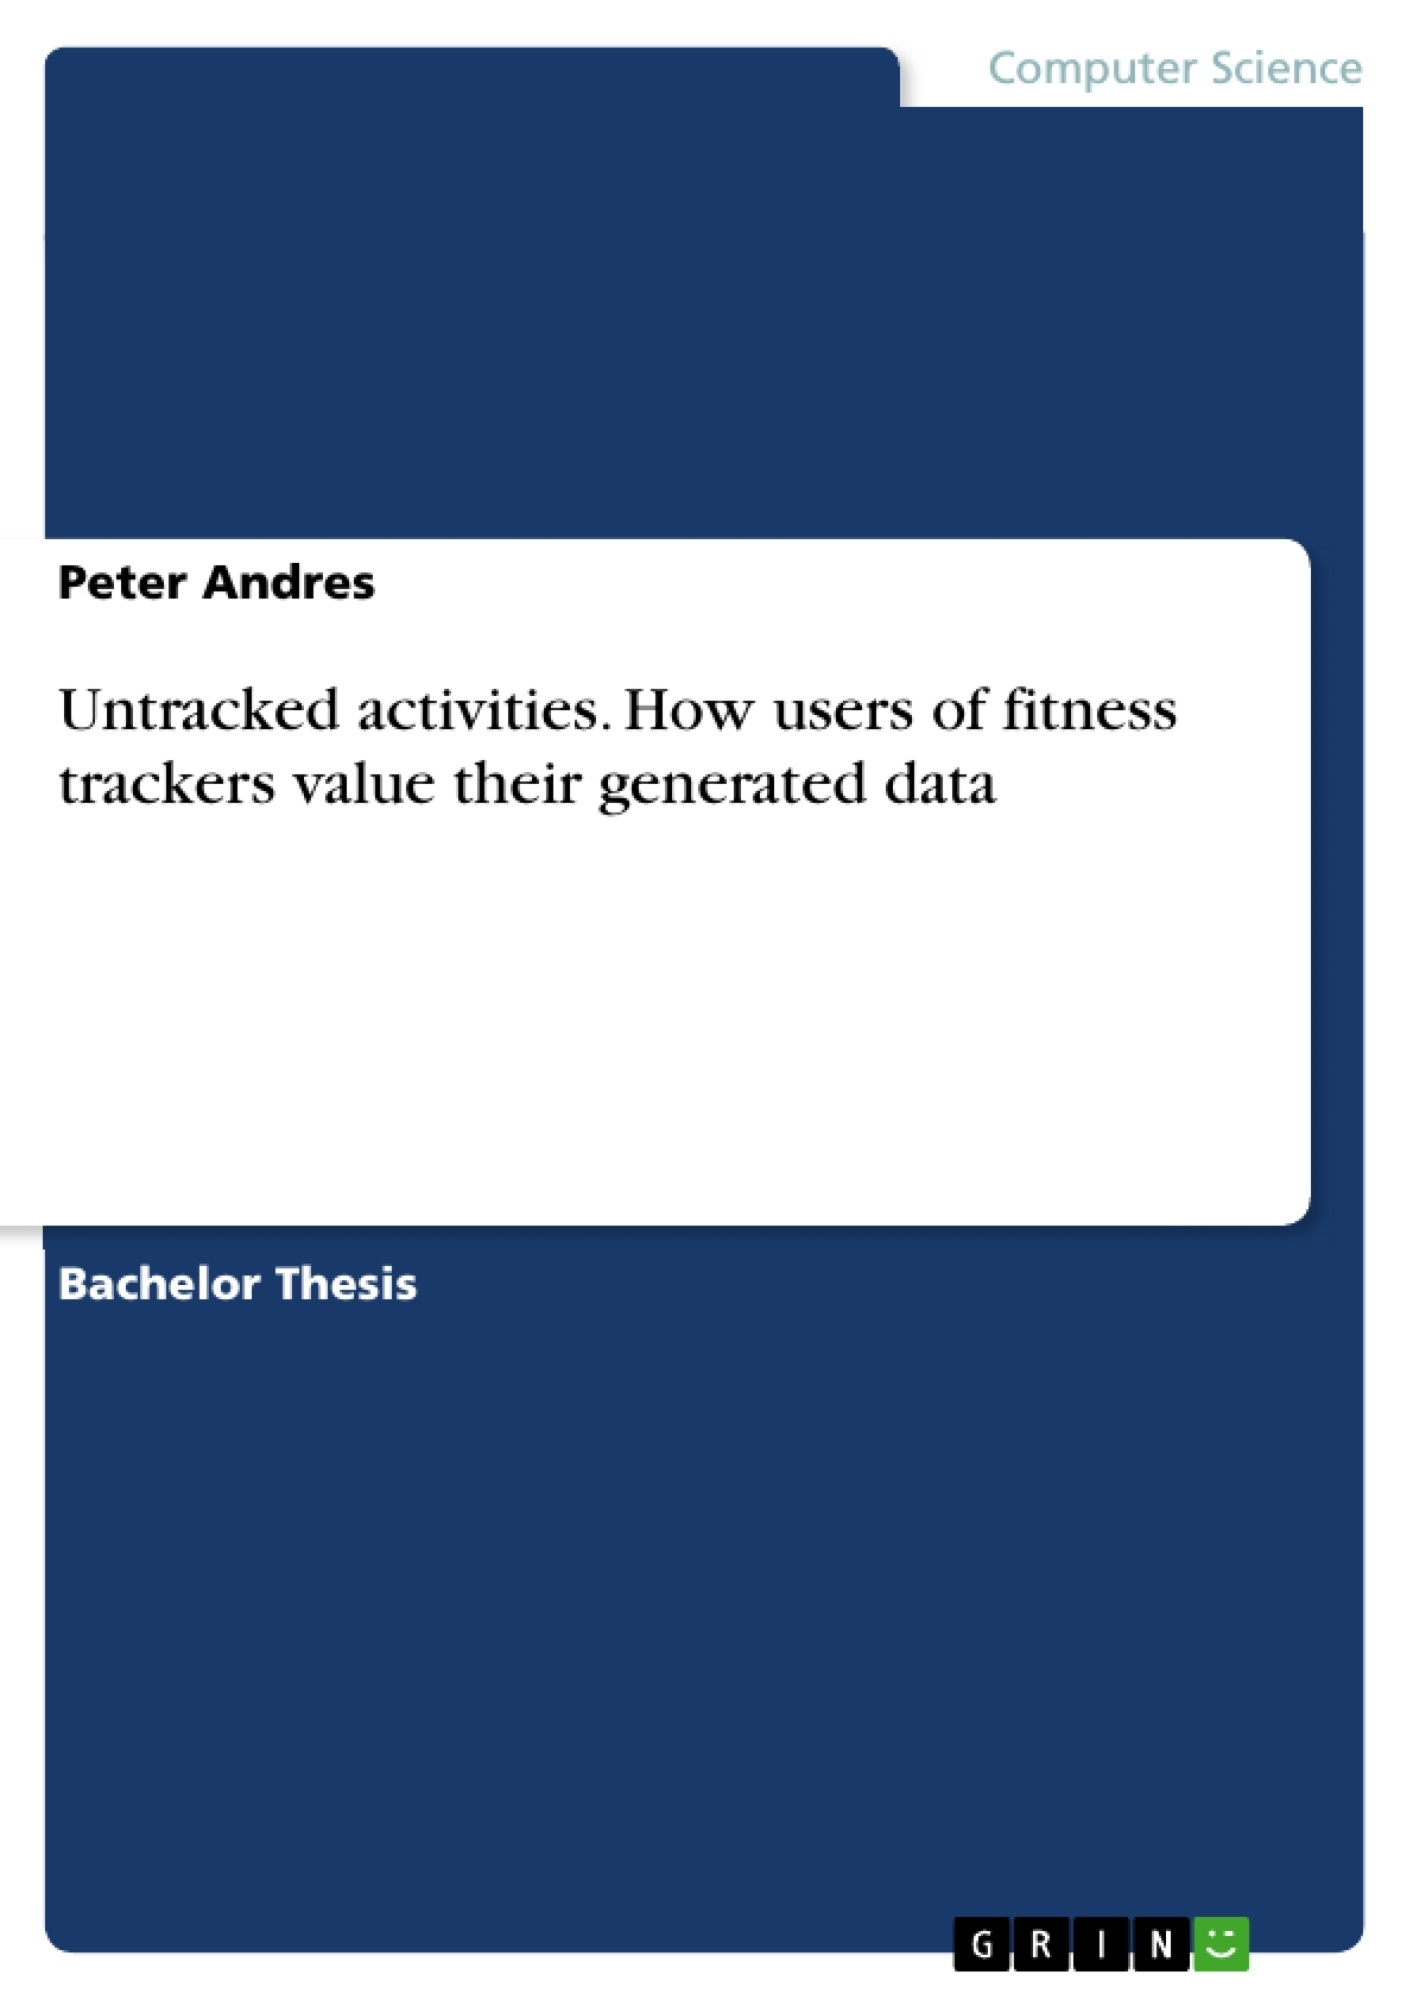 Title: Untracked activities. How users of fitness trackers value their generated data